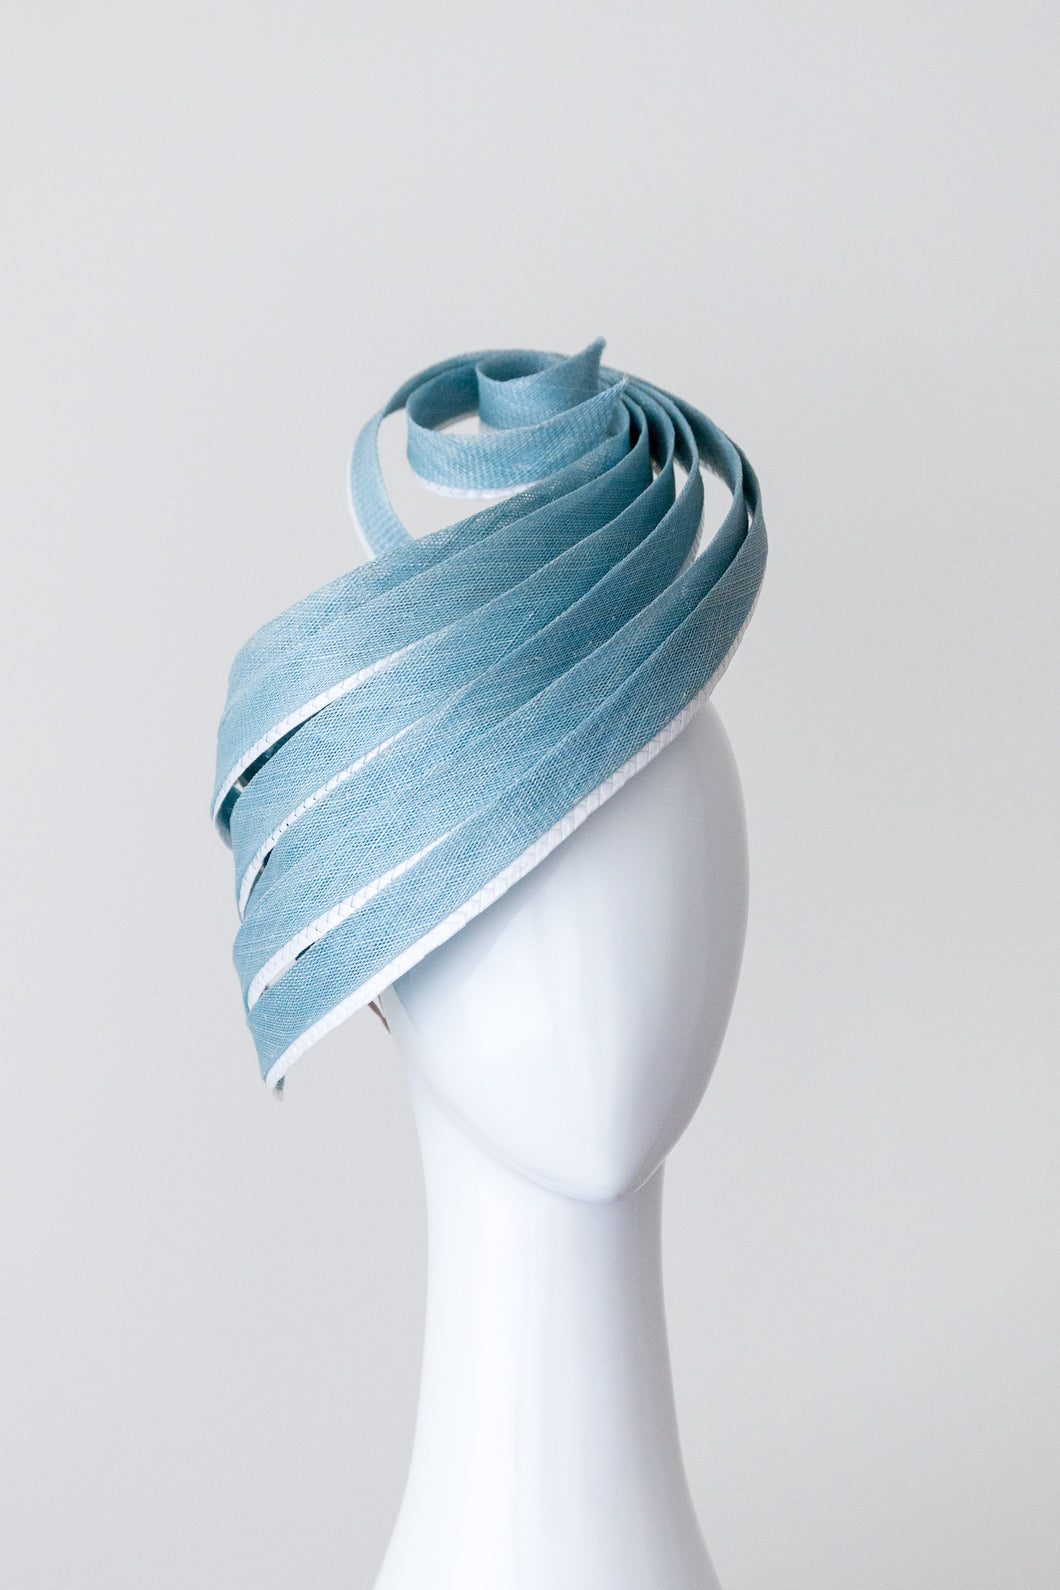 LEAH- pale blue sculptural hat with white highlights